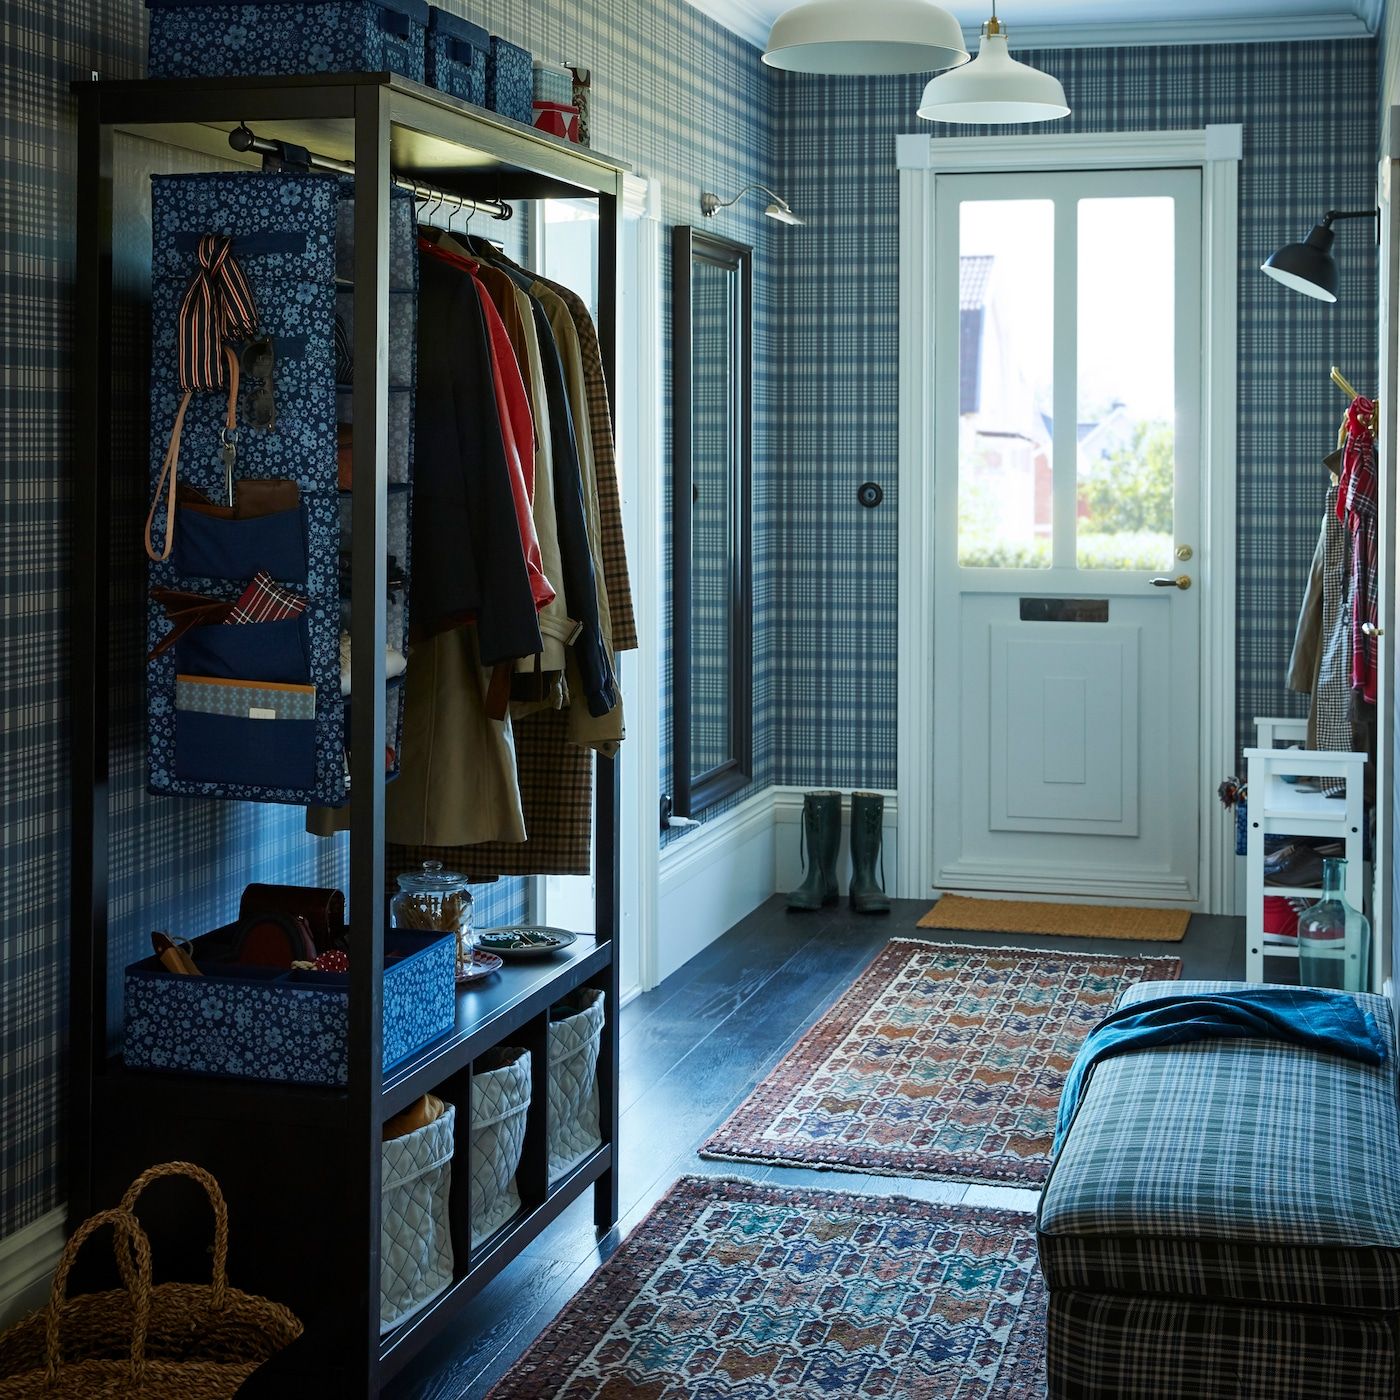 A hall entrance way with an open shelving unit for coats, a plaid patterned footstool and plaid wallpaper on the wall.